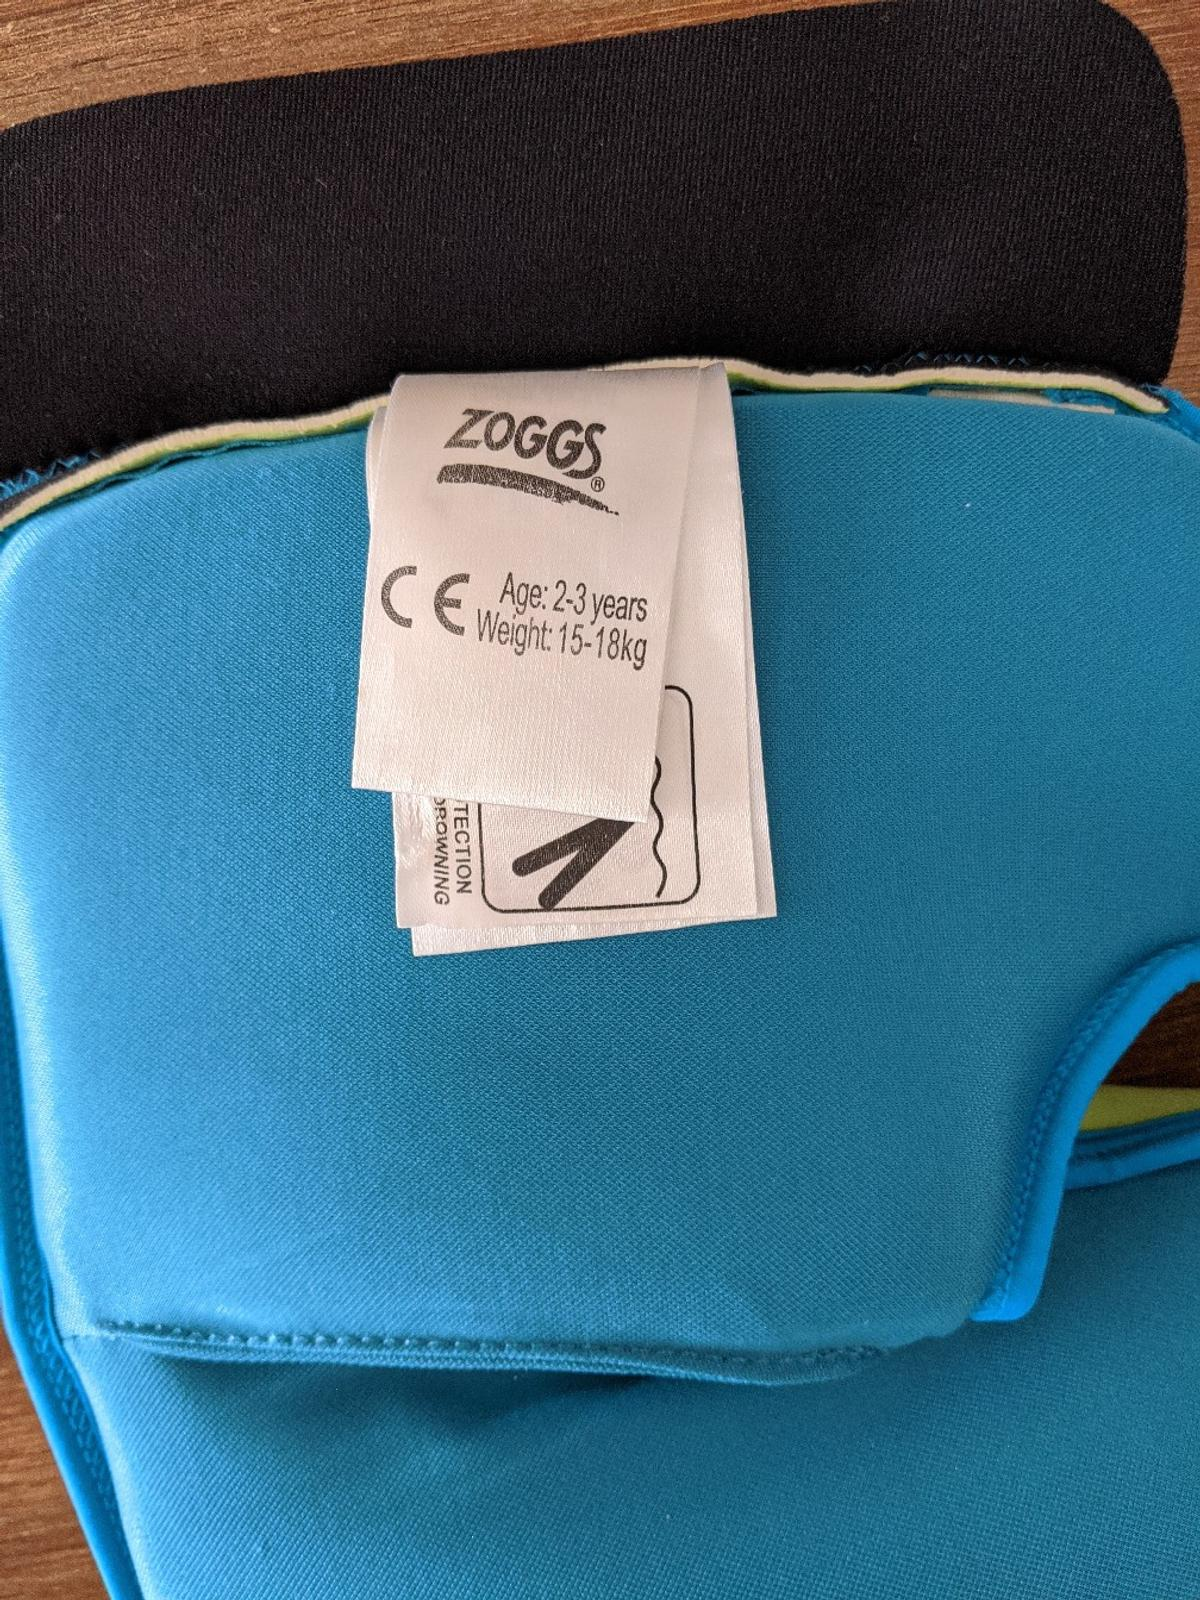 Zoggs Kids Swim Jacket Childrens Swimming Safety Aid Vest Swimwear 2-3 Years, 15-18 kg, Zoggs boys neoprene swim jacket with a front zip and velcro fastening. Ideal for young children allowing them to enjoy the water and build up confidence in the pool. Good used condition. Collection from Tipton near Pure Gym. Smoke and pet free home.